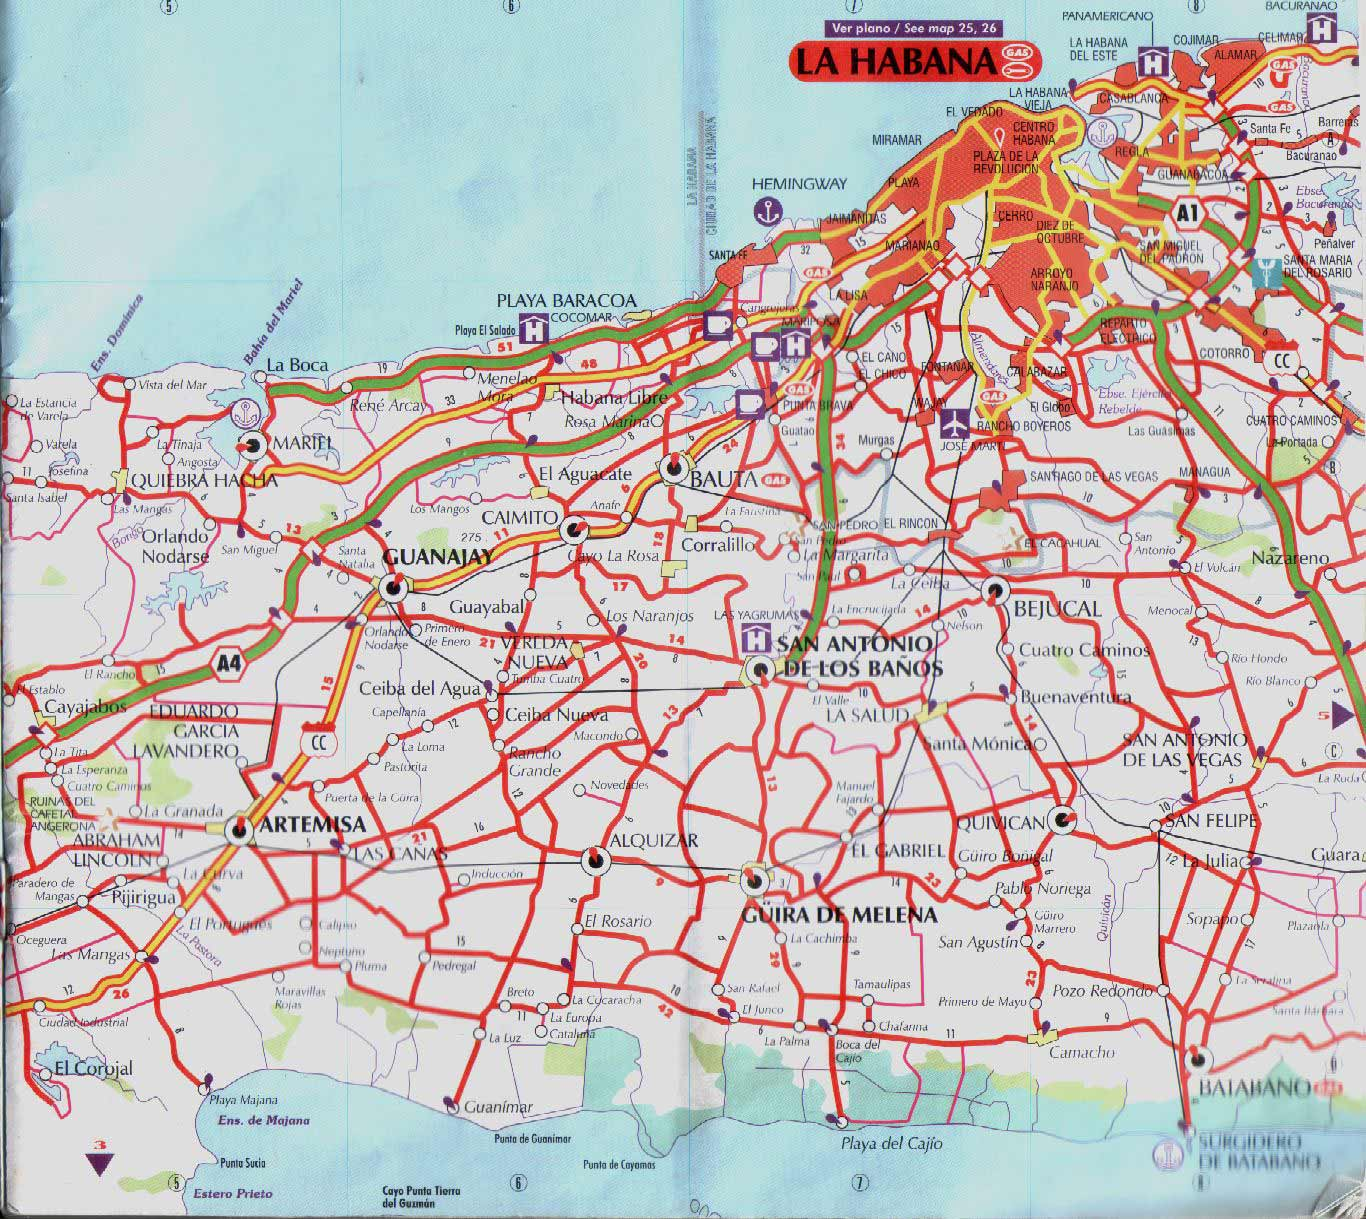 Map of La Habana Mapsofnet